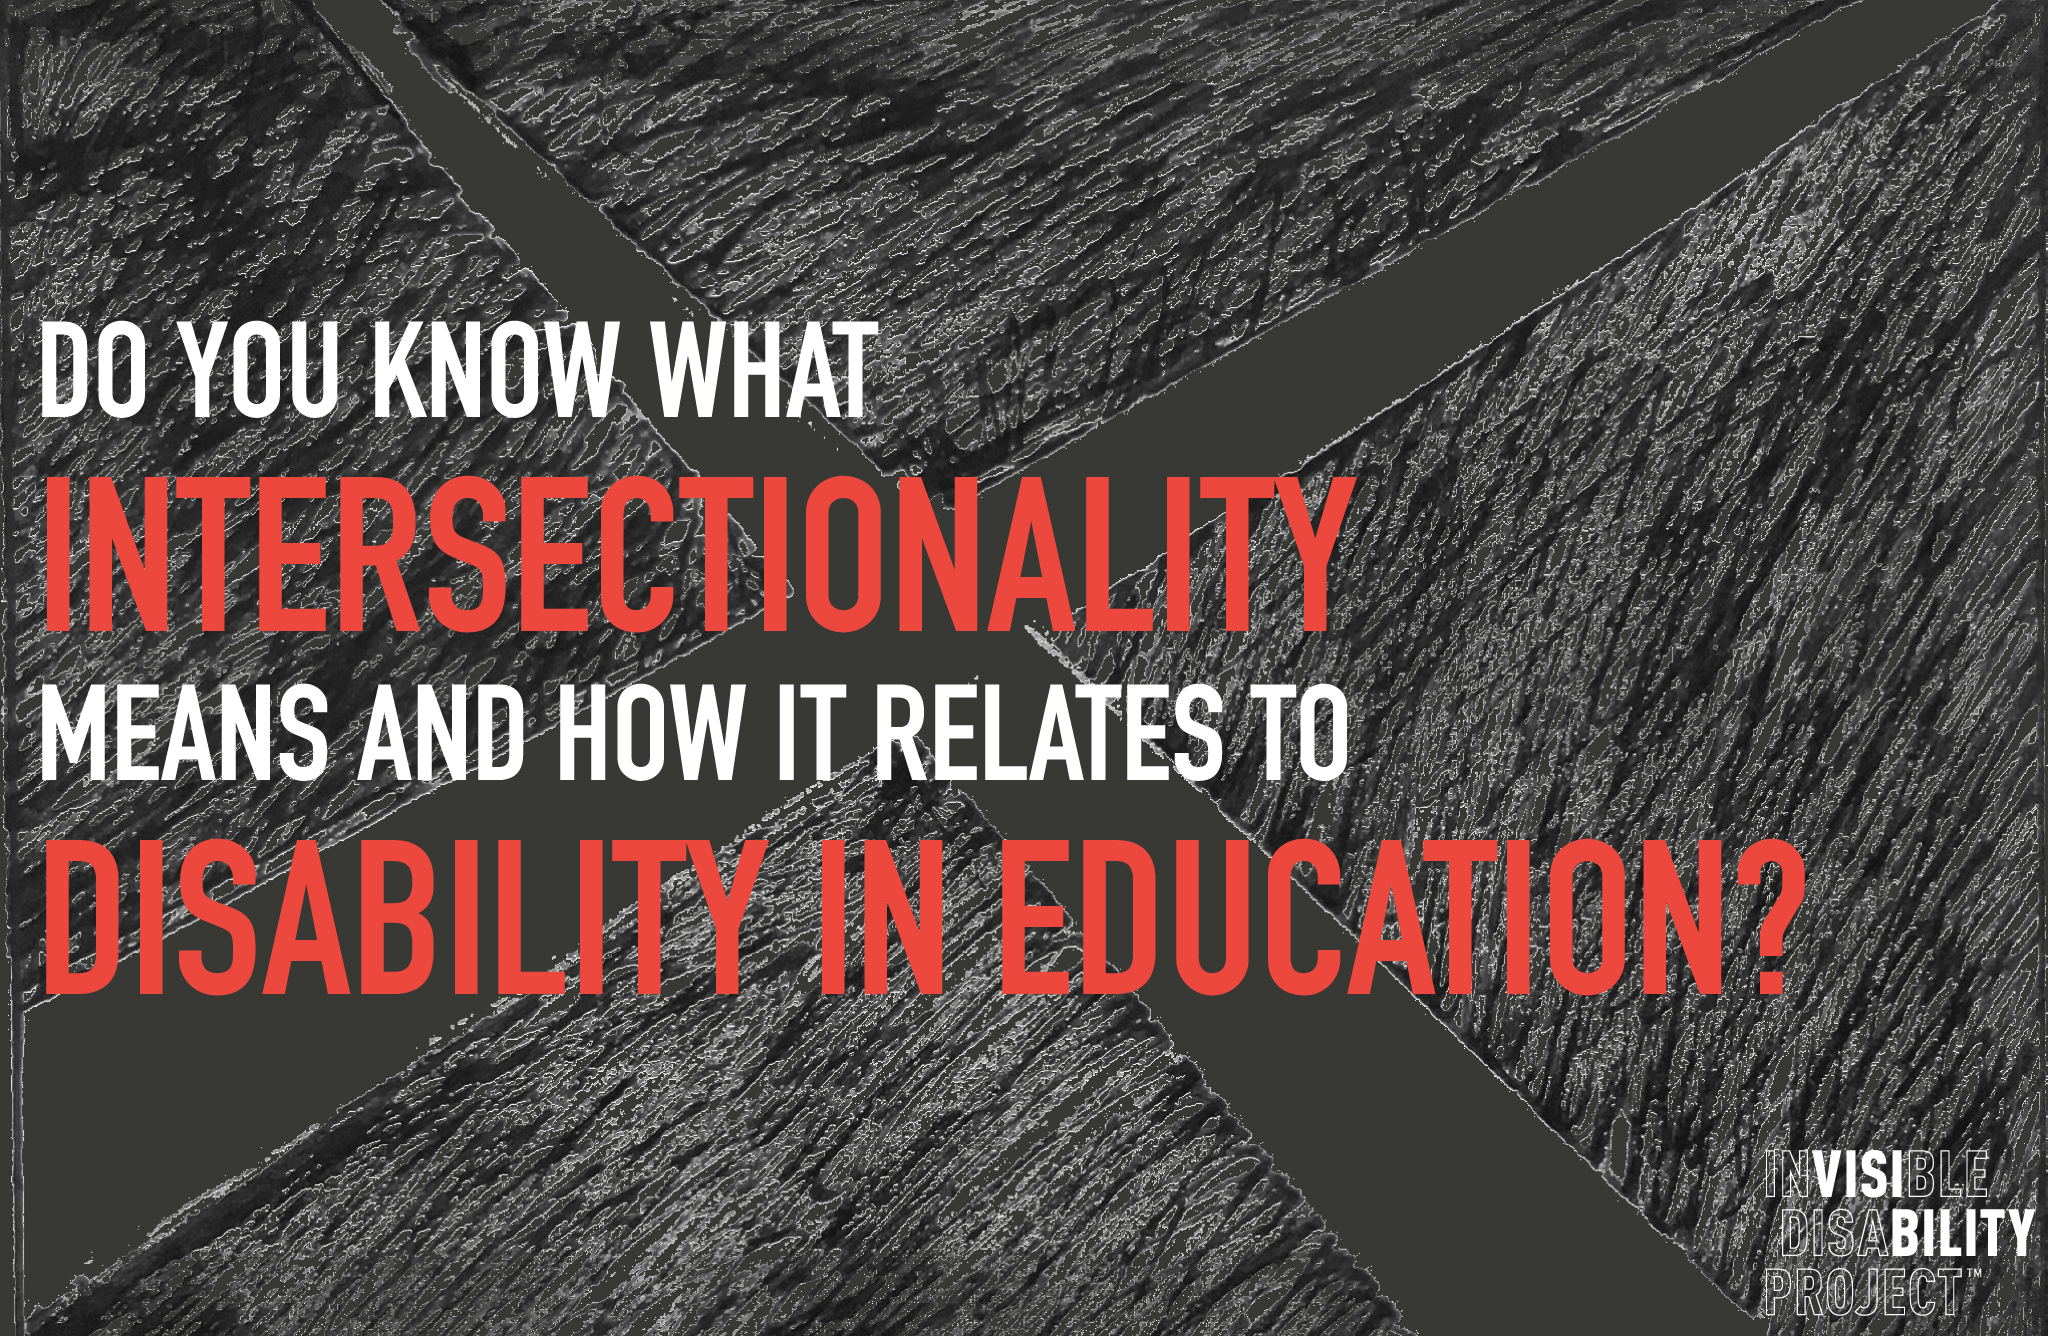 Do you know what intersectionality means and how it relates to disability in education?